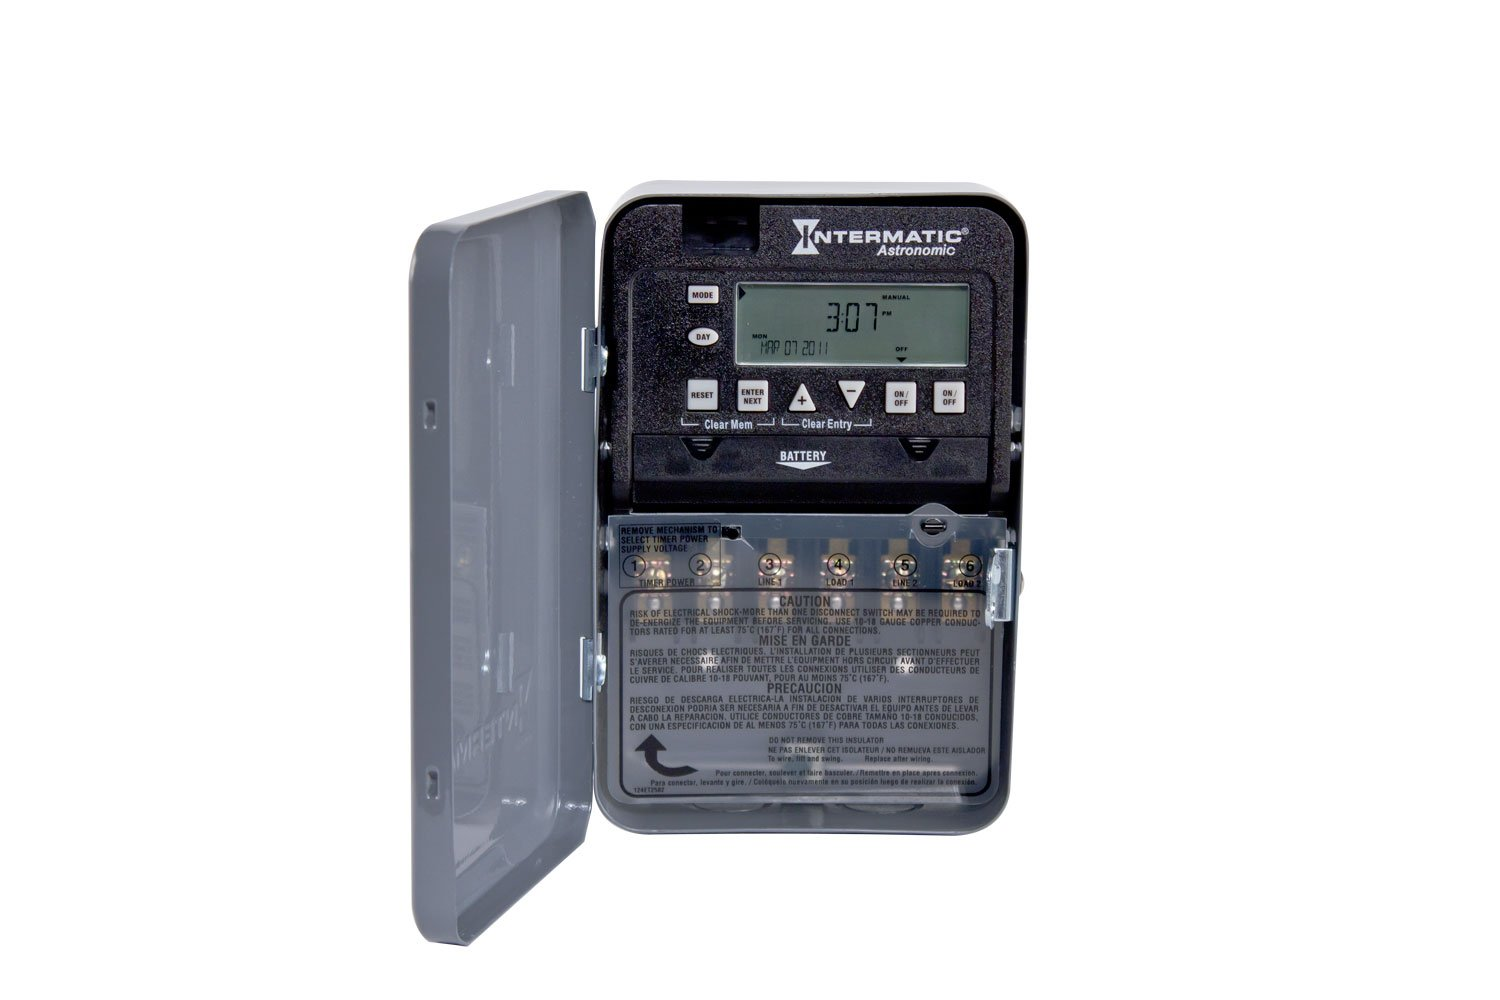 Intermatic ET8215C 7-Day 30-Amps 2XSPST OR DPST Electronic ...